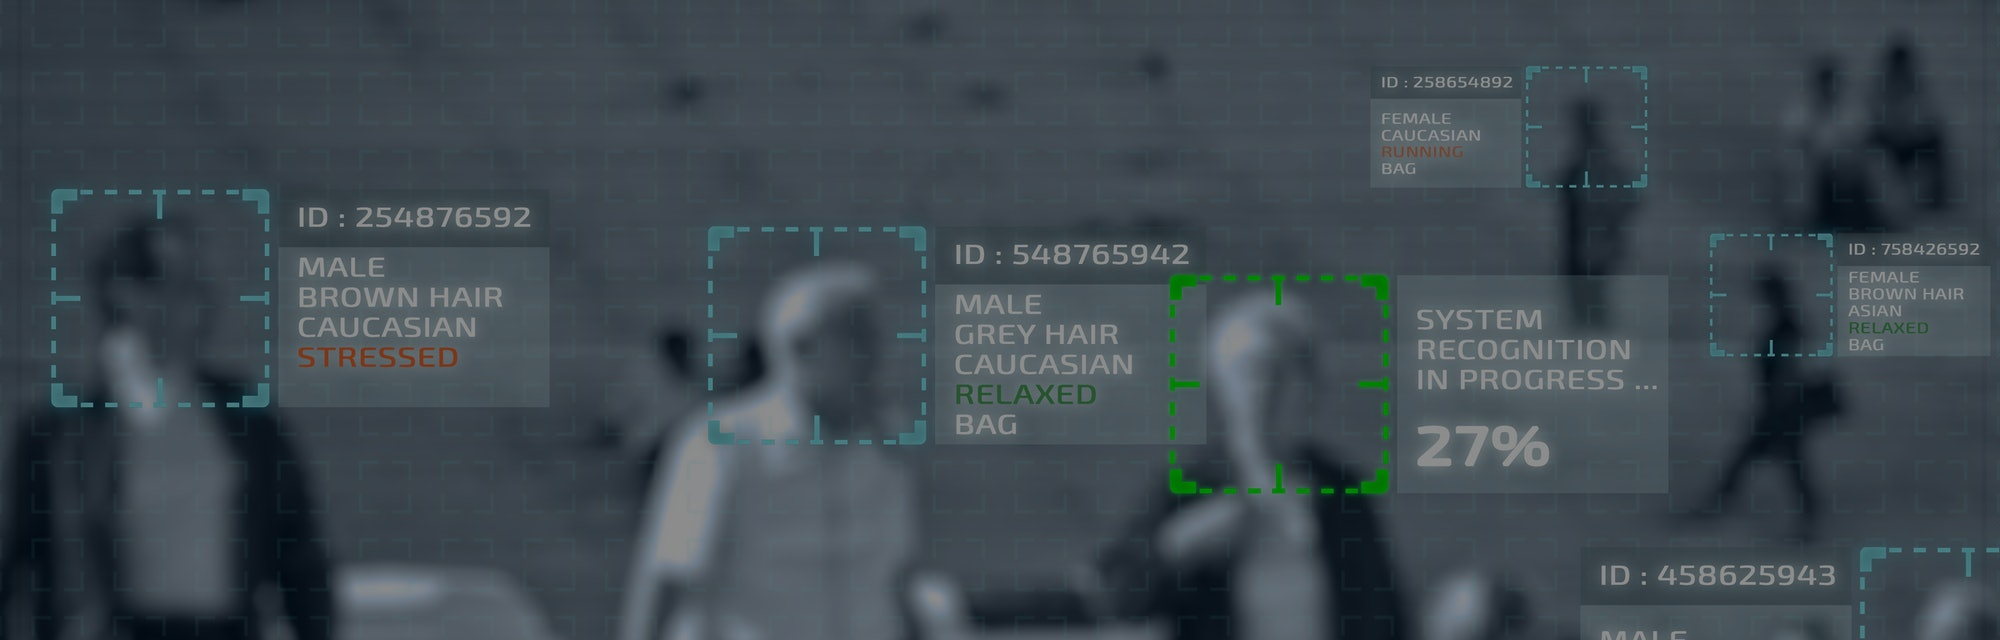 Simulation of a screen of cctv cameras with facial recognition